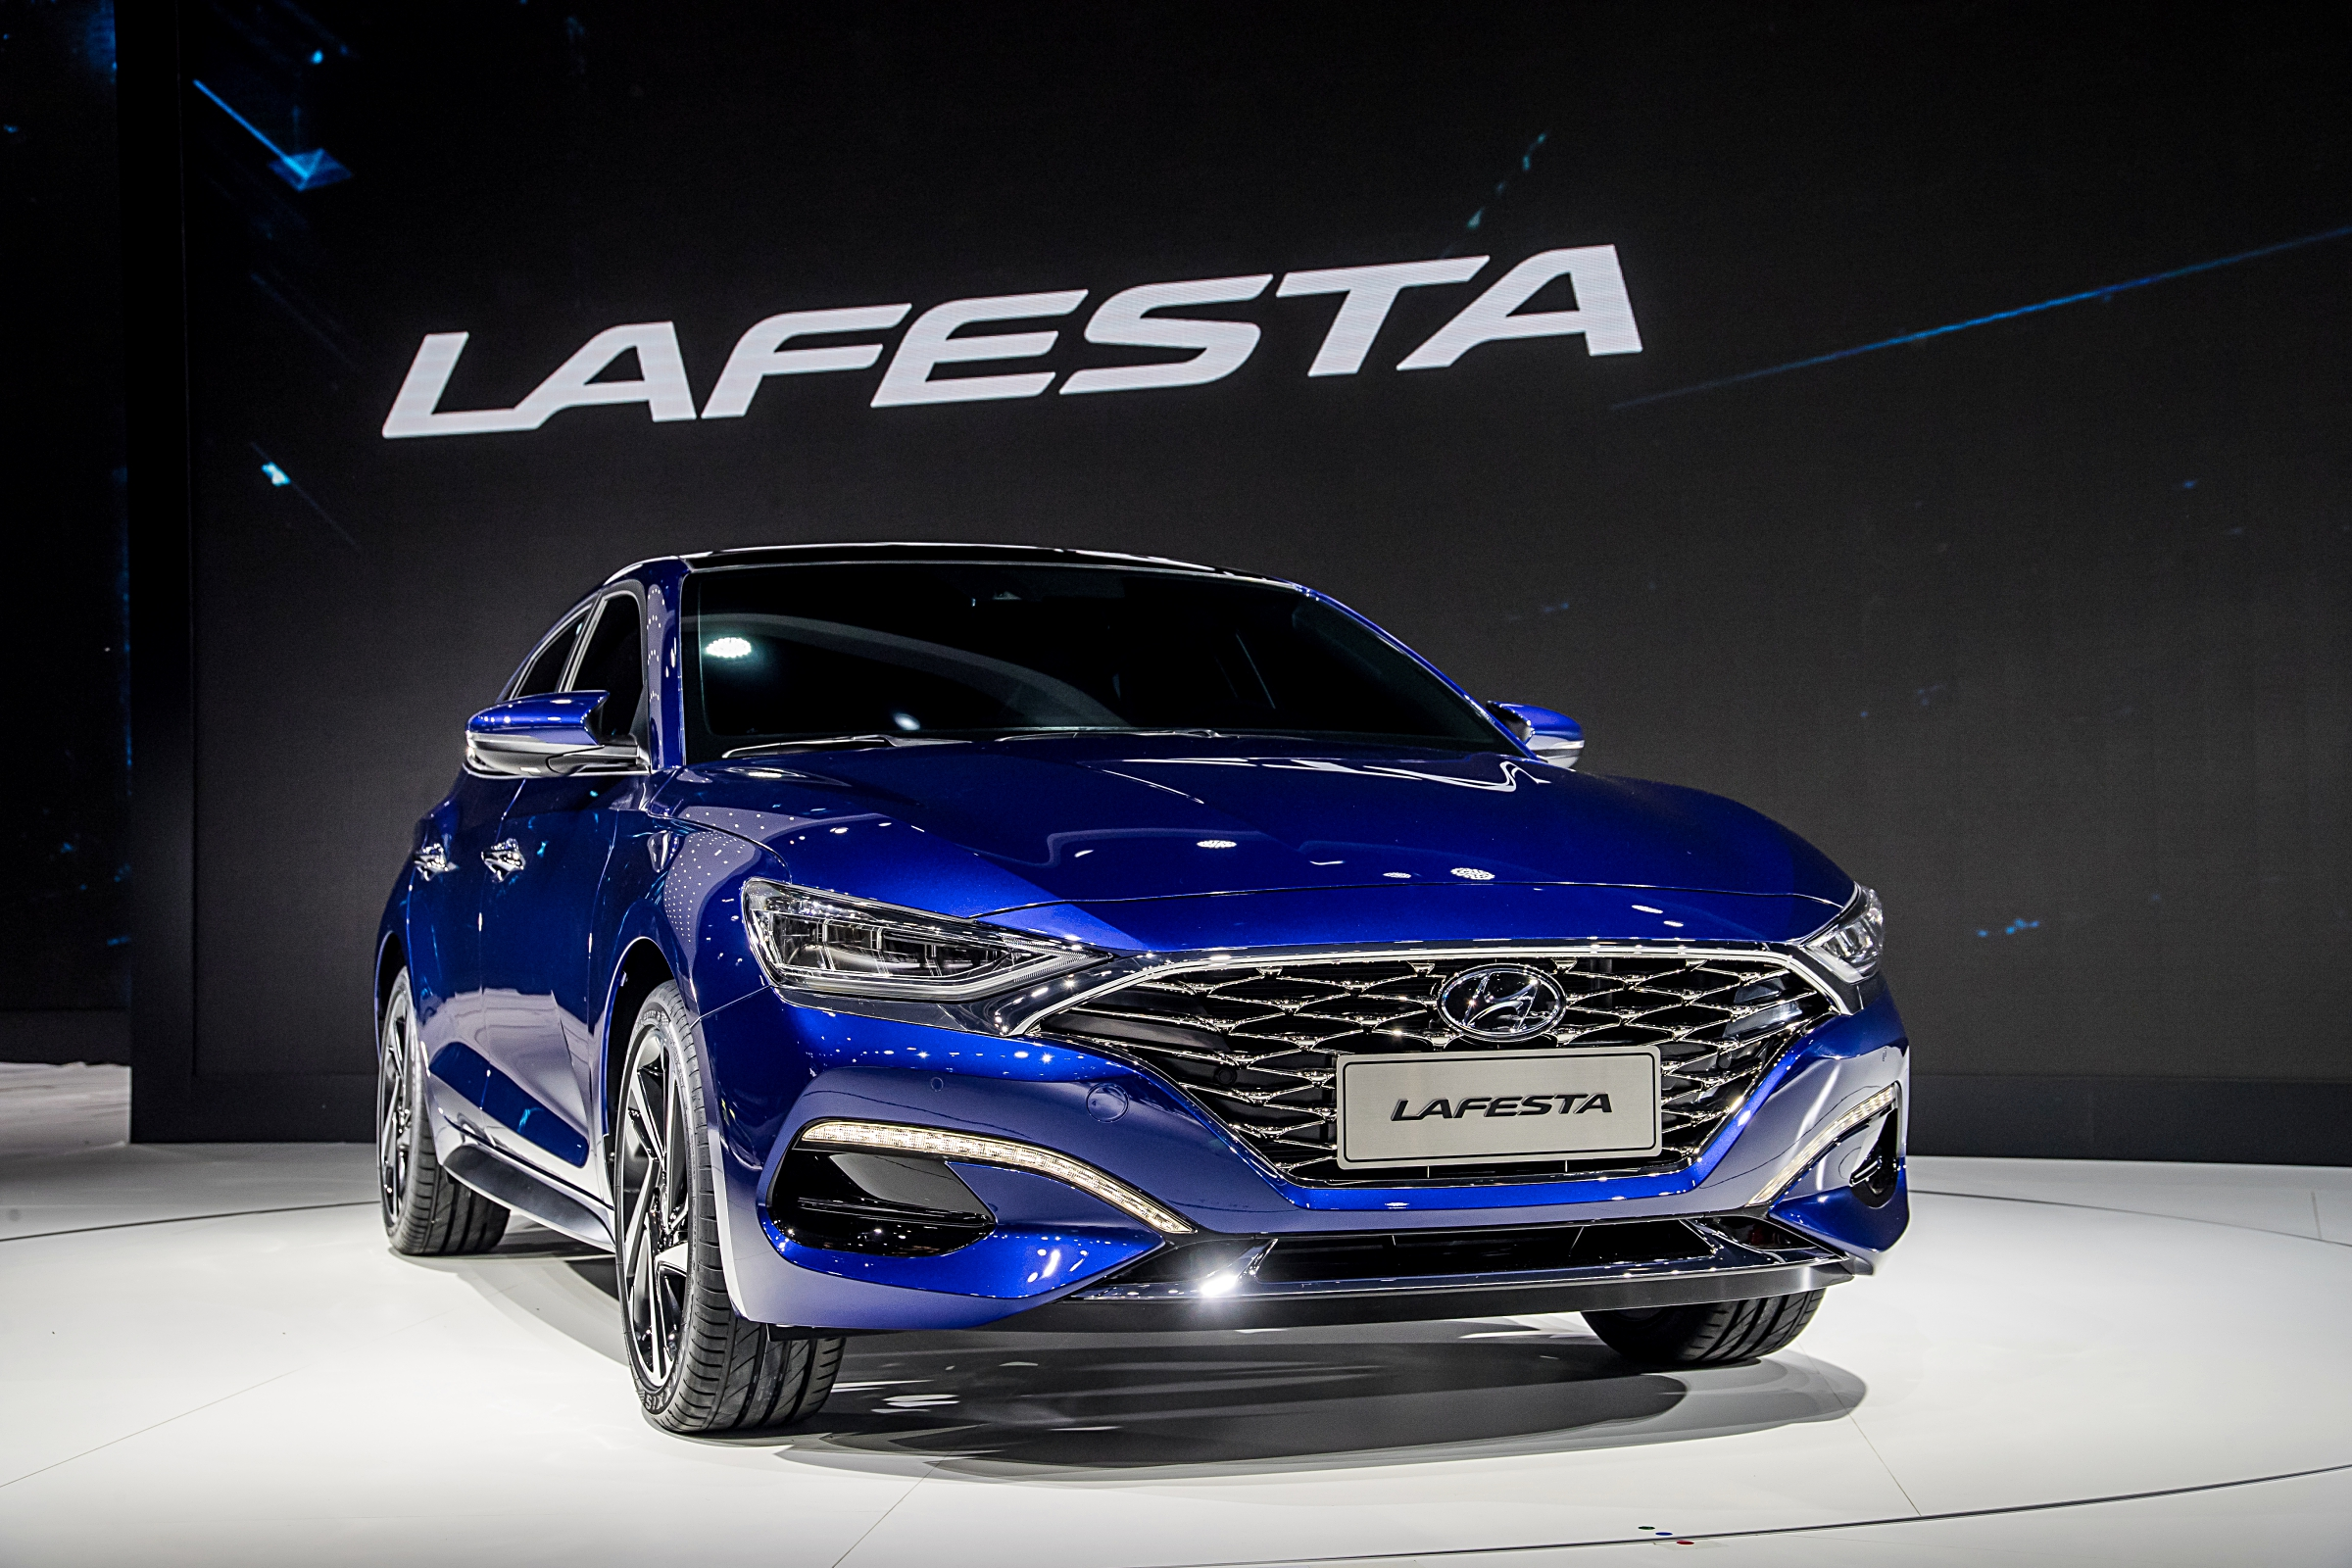 Hyundai Lafesta sports sedan revealed at Auto China 2018